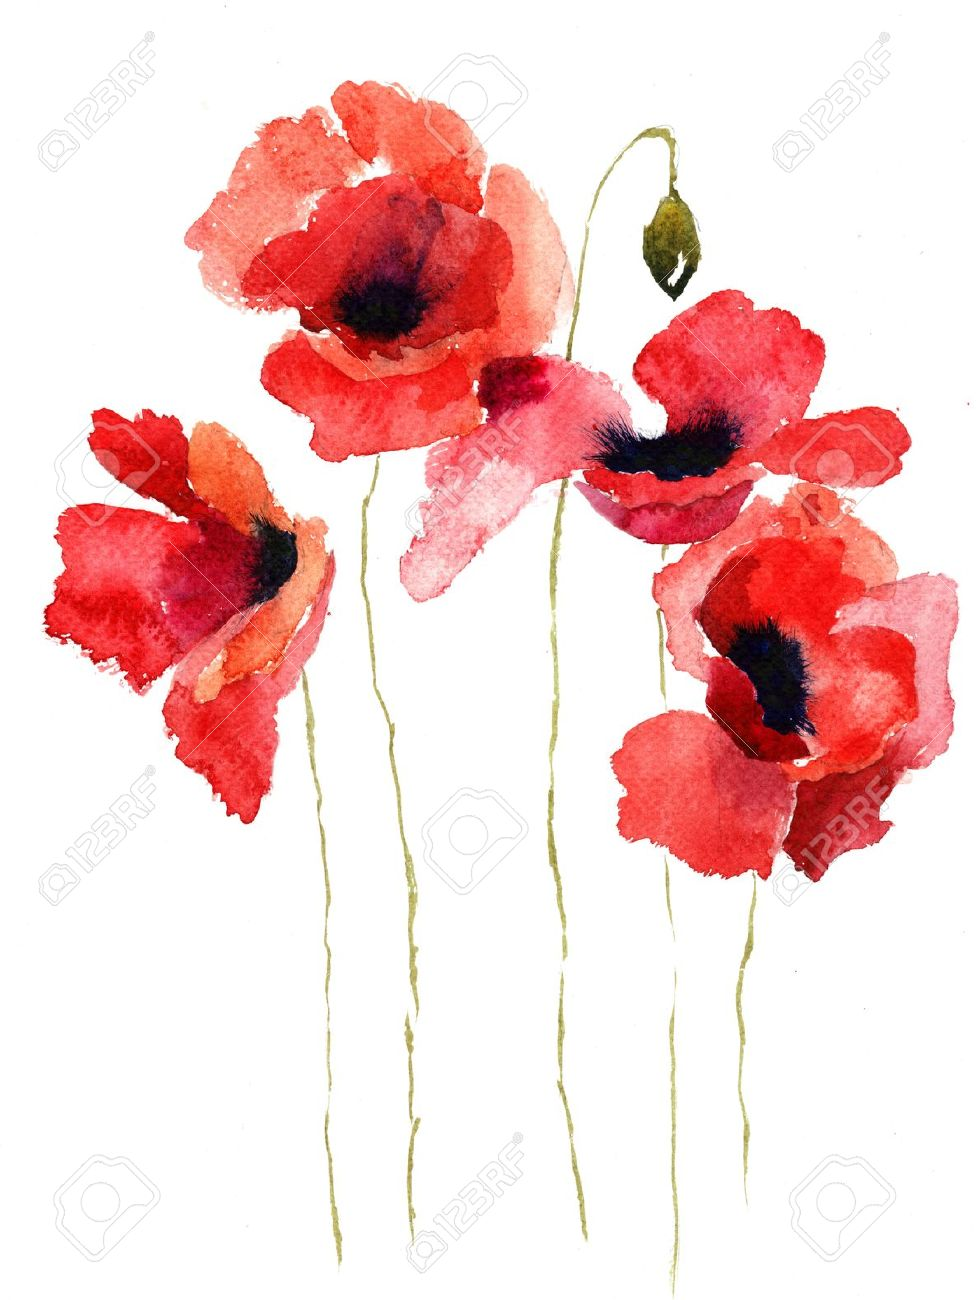 Stylized Poppy Flowers Illustration Stock Photo  Picture And Royalty     Stylized Poppy flowers illustration